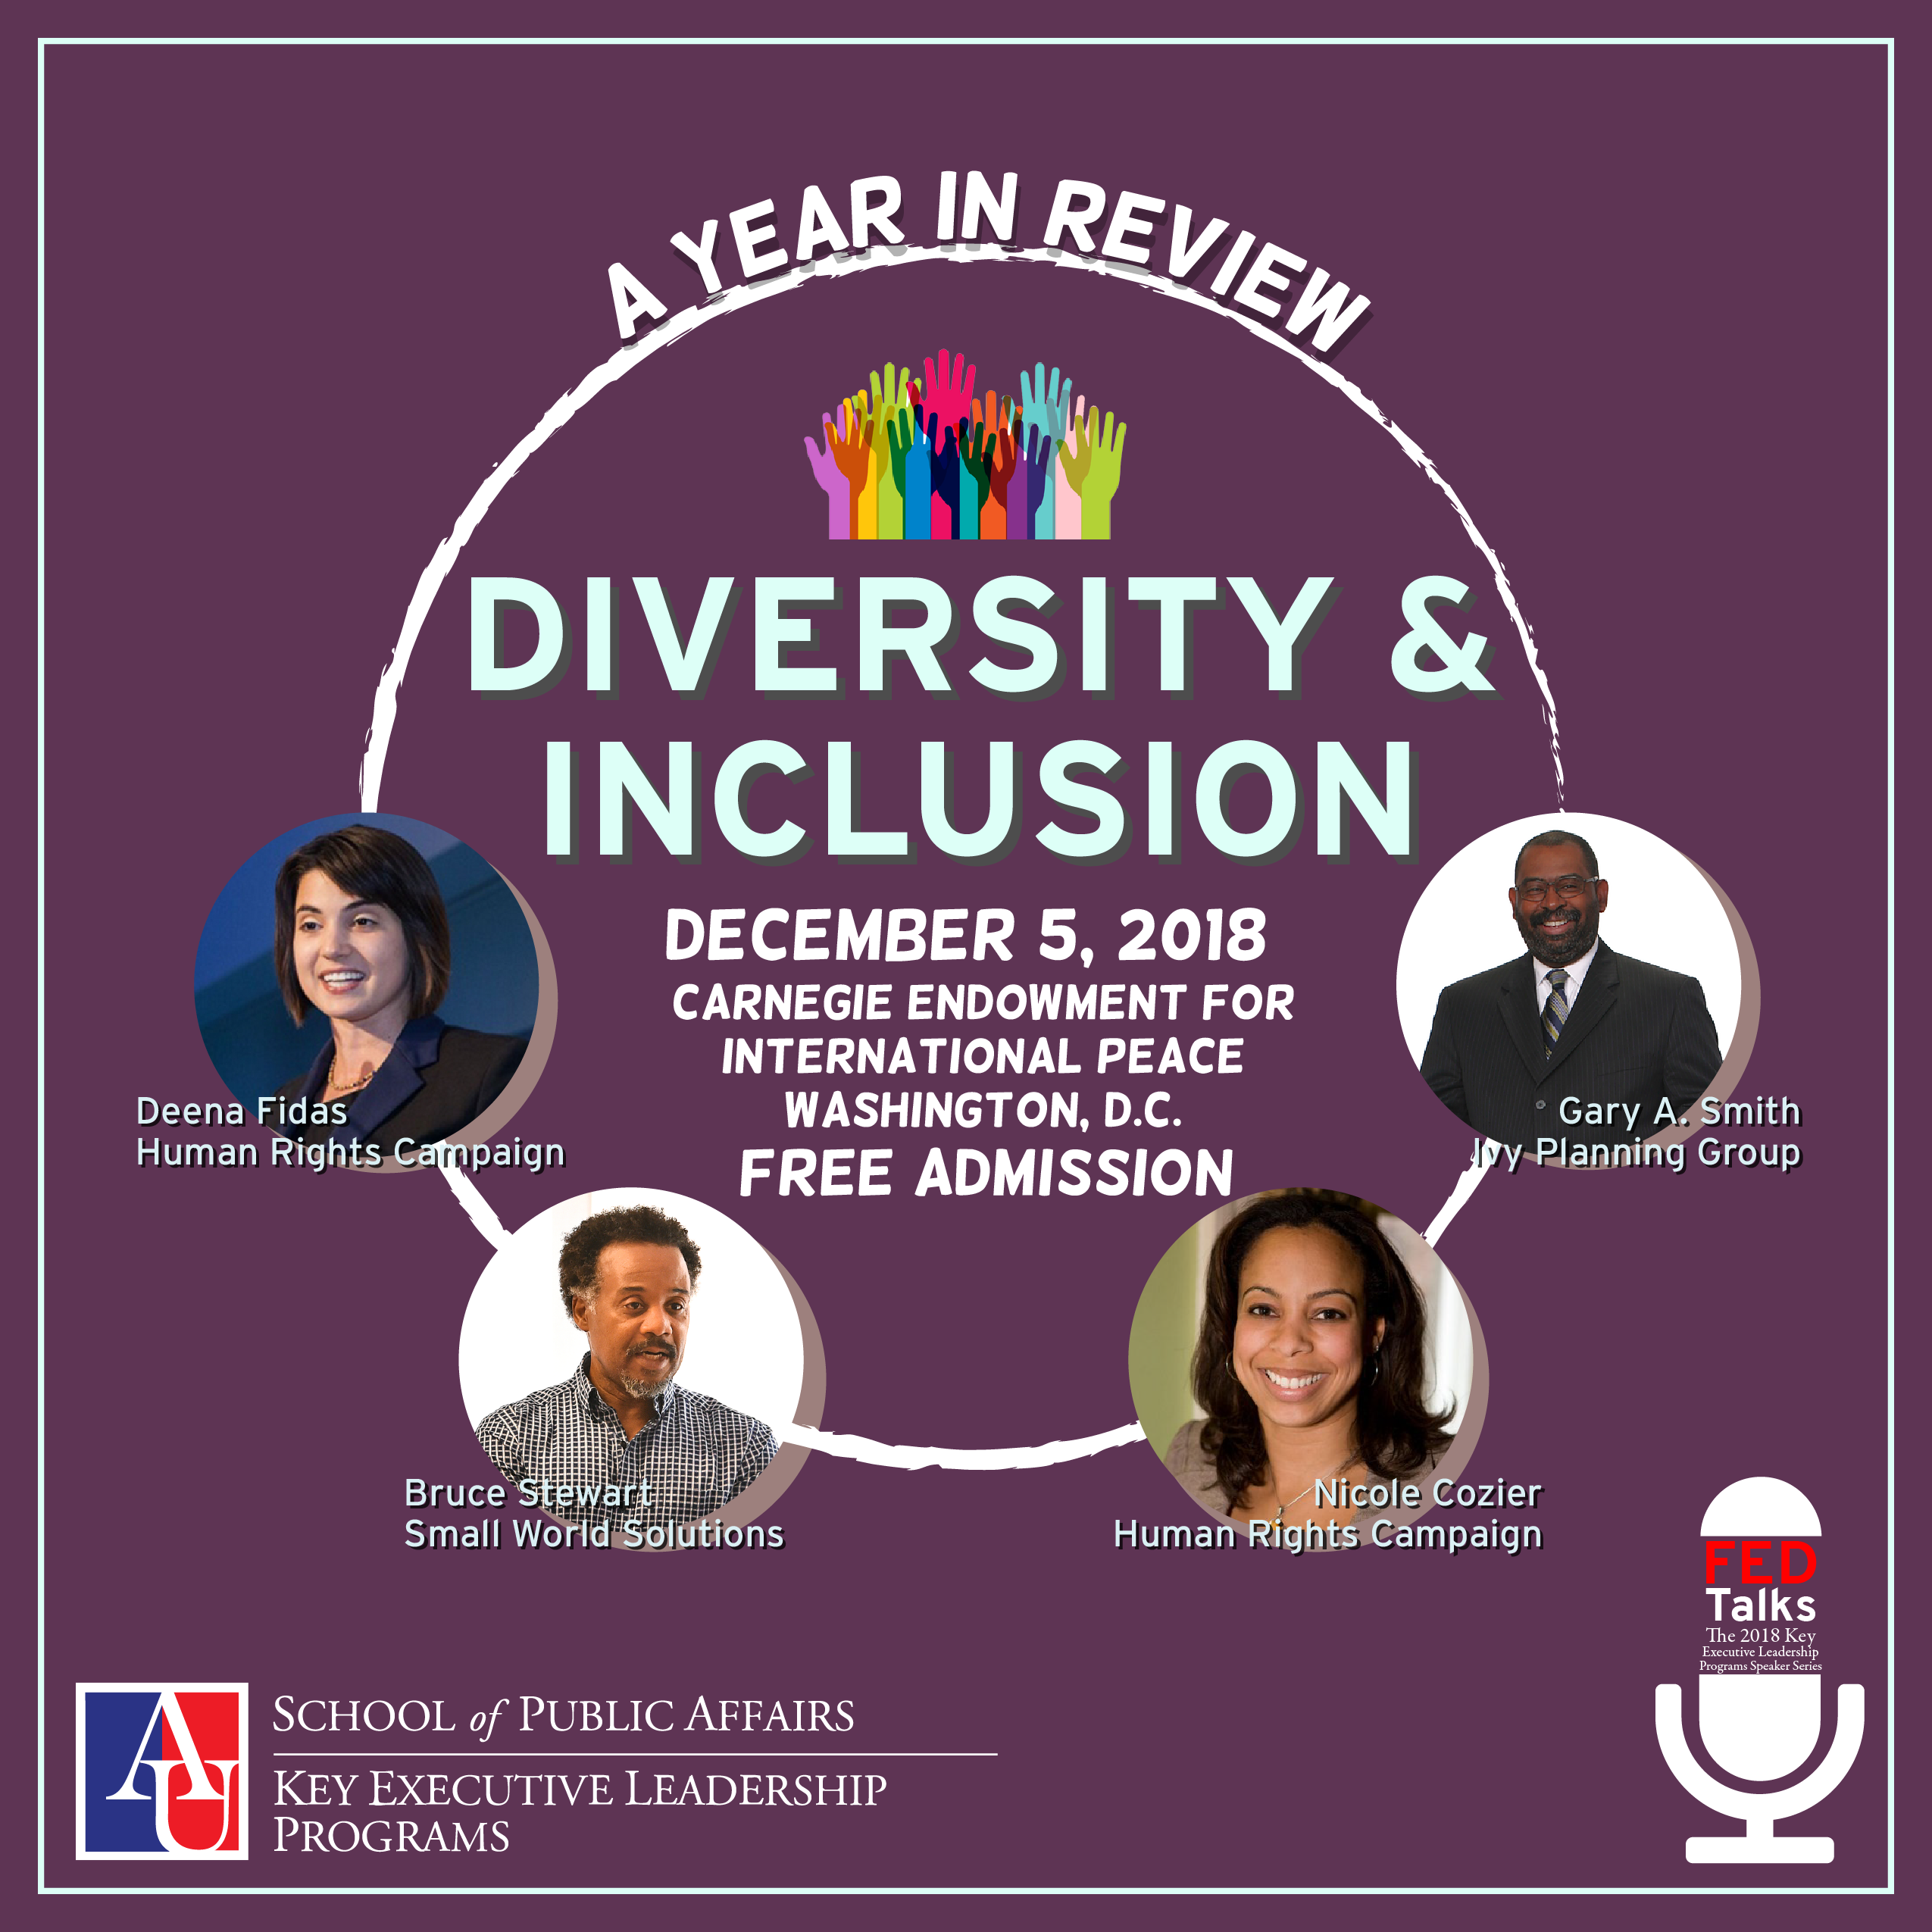 FedTalks Year in Review flyer with speakers, description in text below